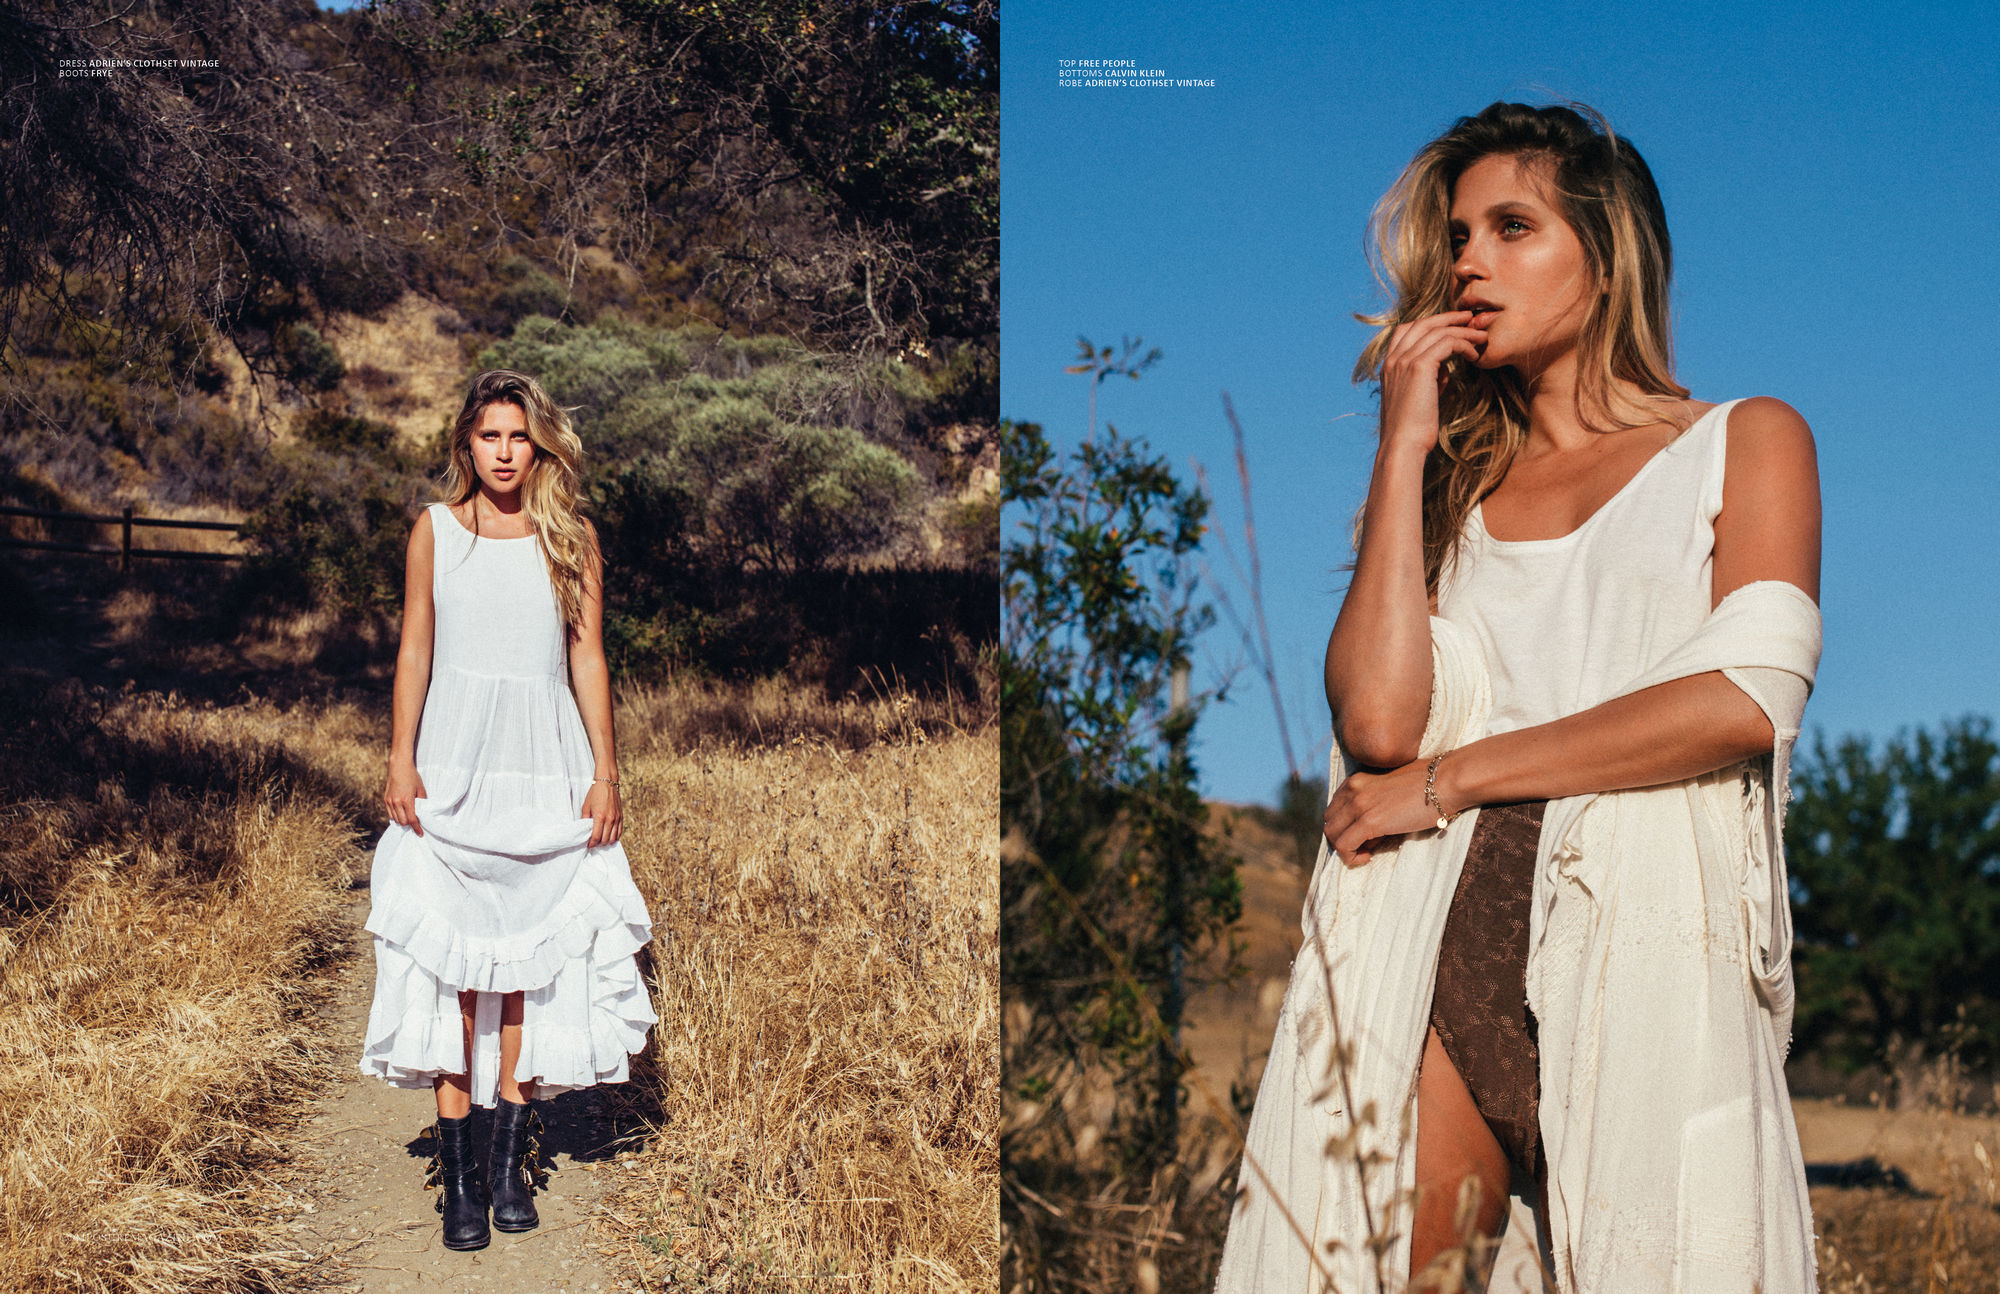 Fashion Editorial photographed by Cody McGibbon and styled by Adrien Rabago.